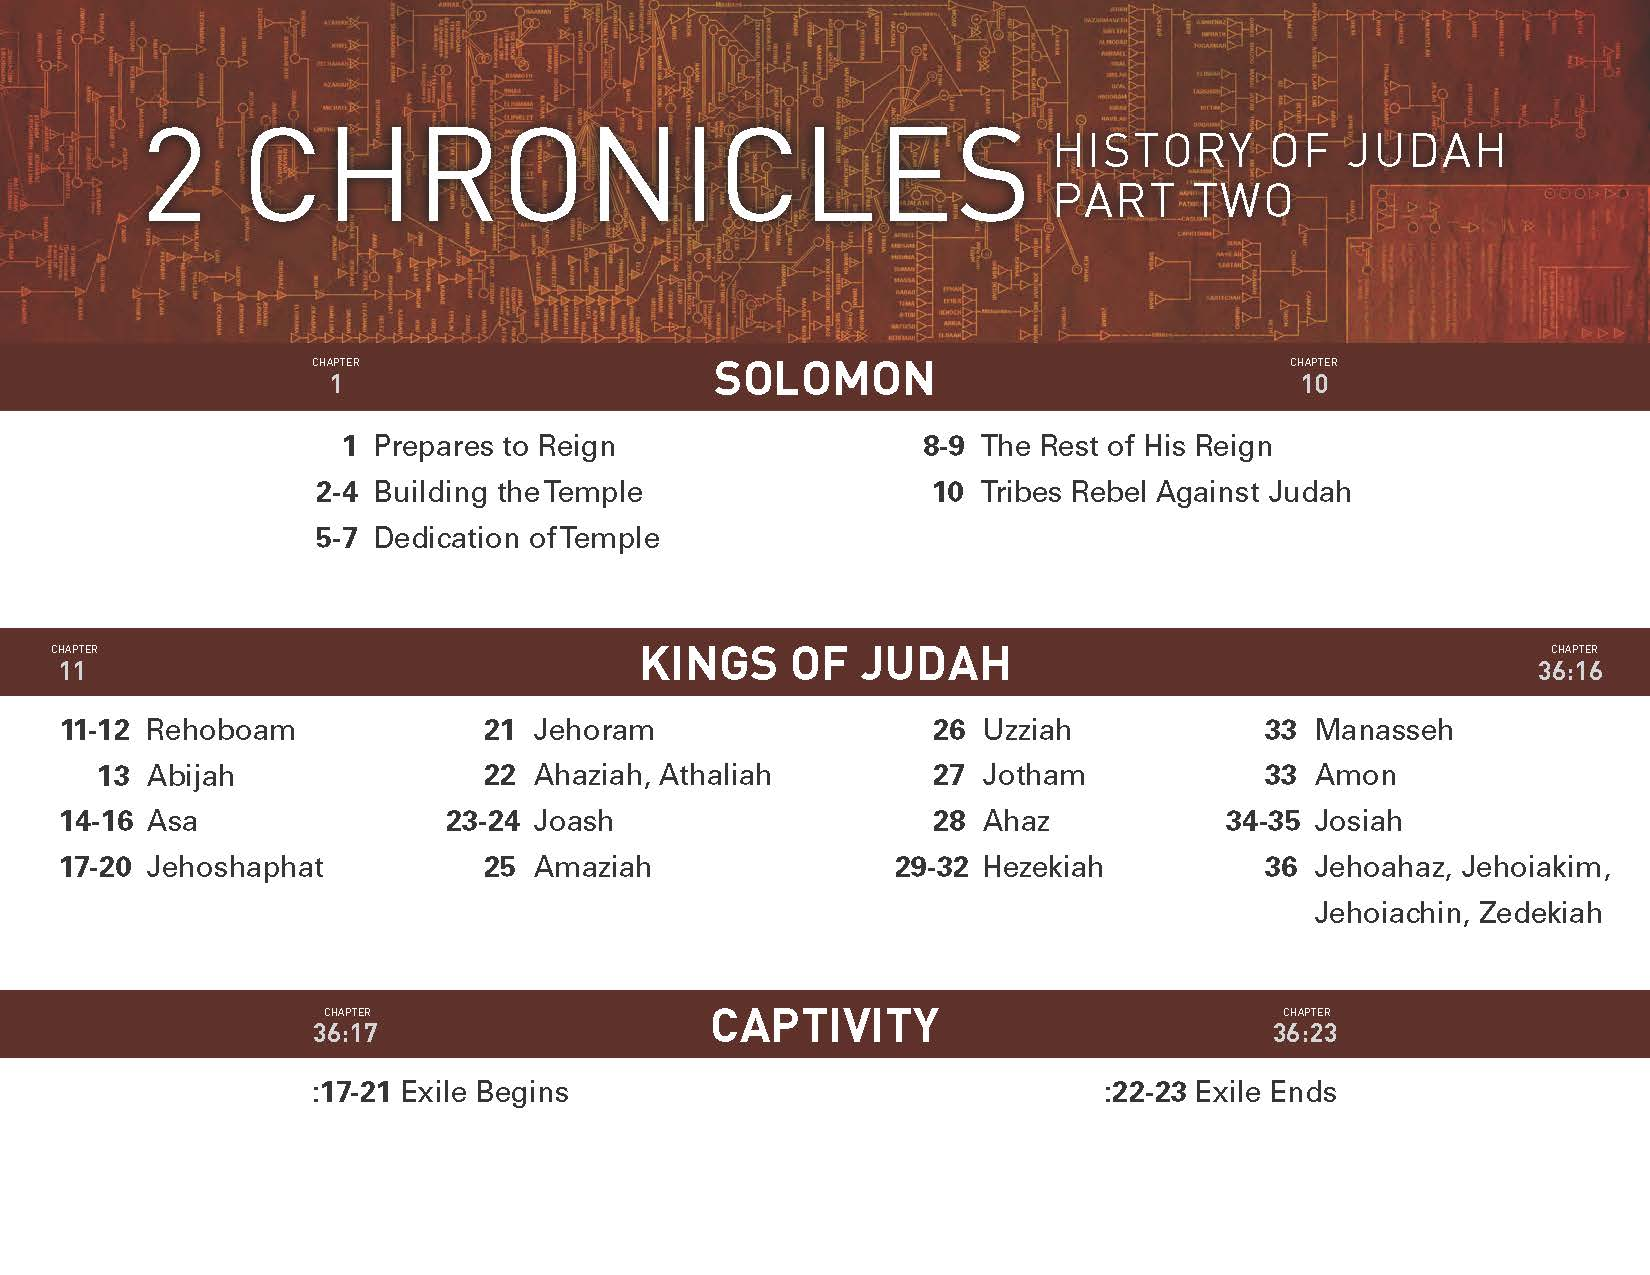 2 Chronicles chart.jpg